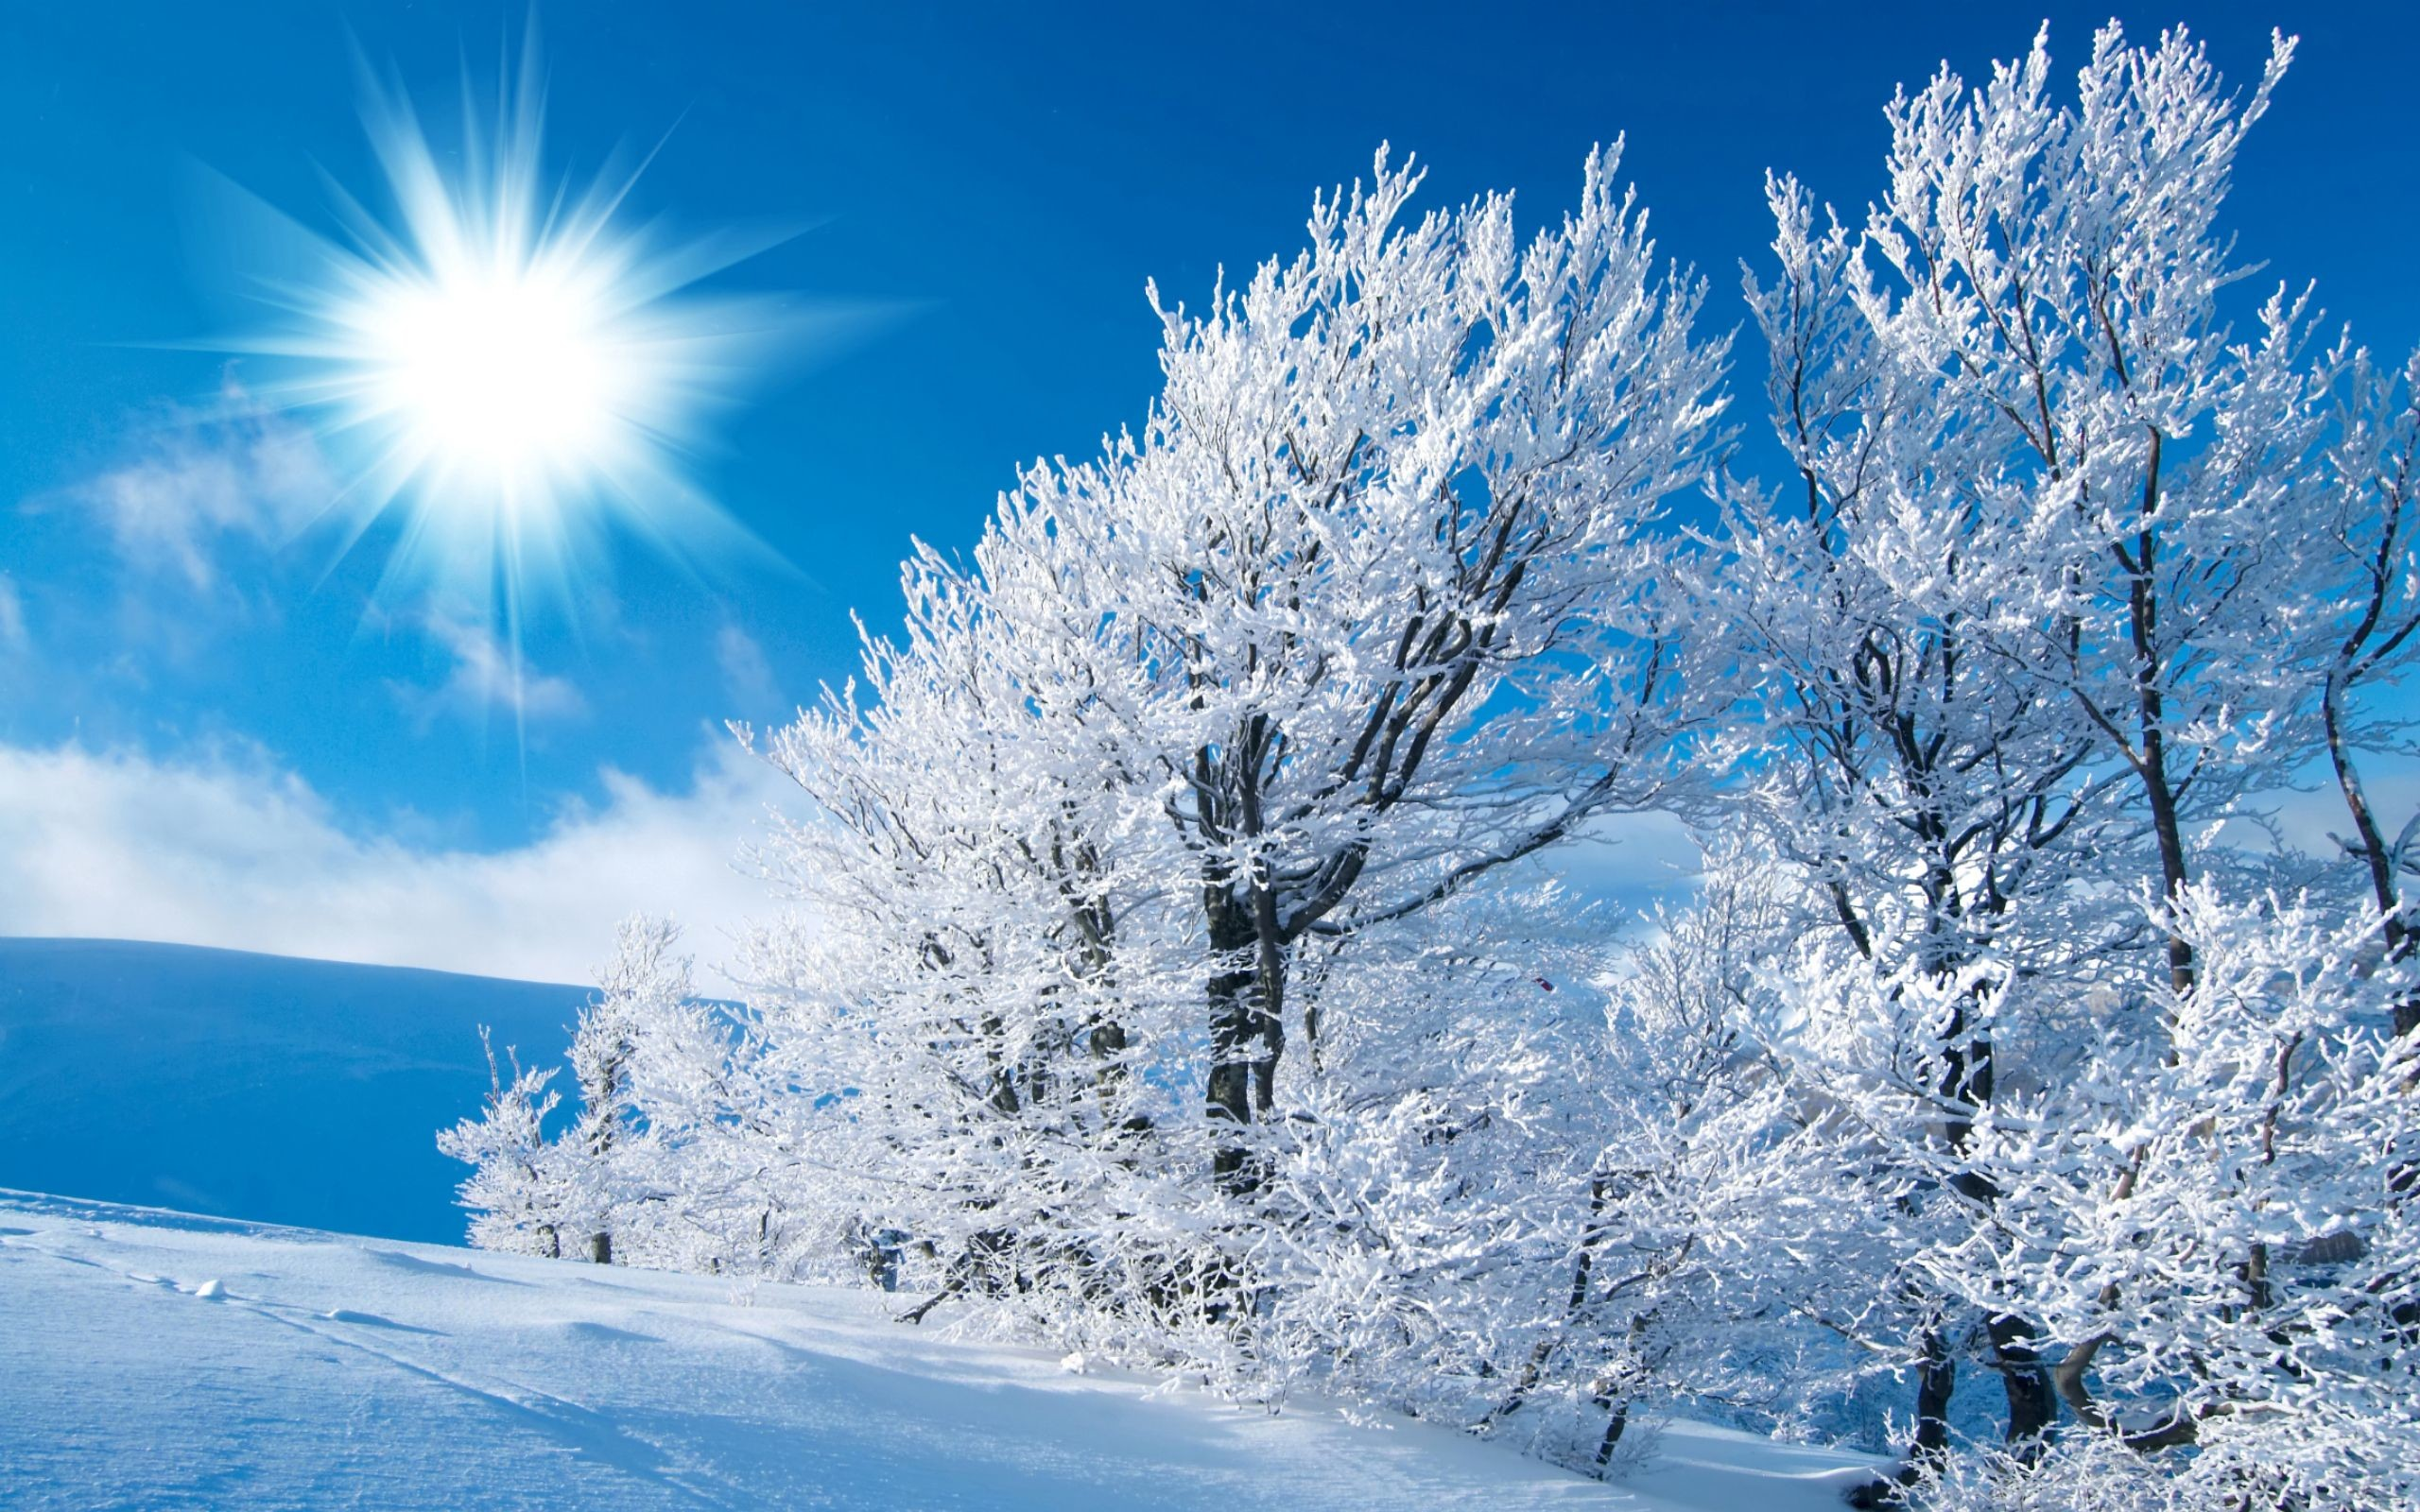 Res: 2560x1600, Winter Scenes | Winter Wallpaper,Snow hd Wallpaper For Desktop,Scene  wallpapers#403